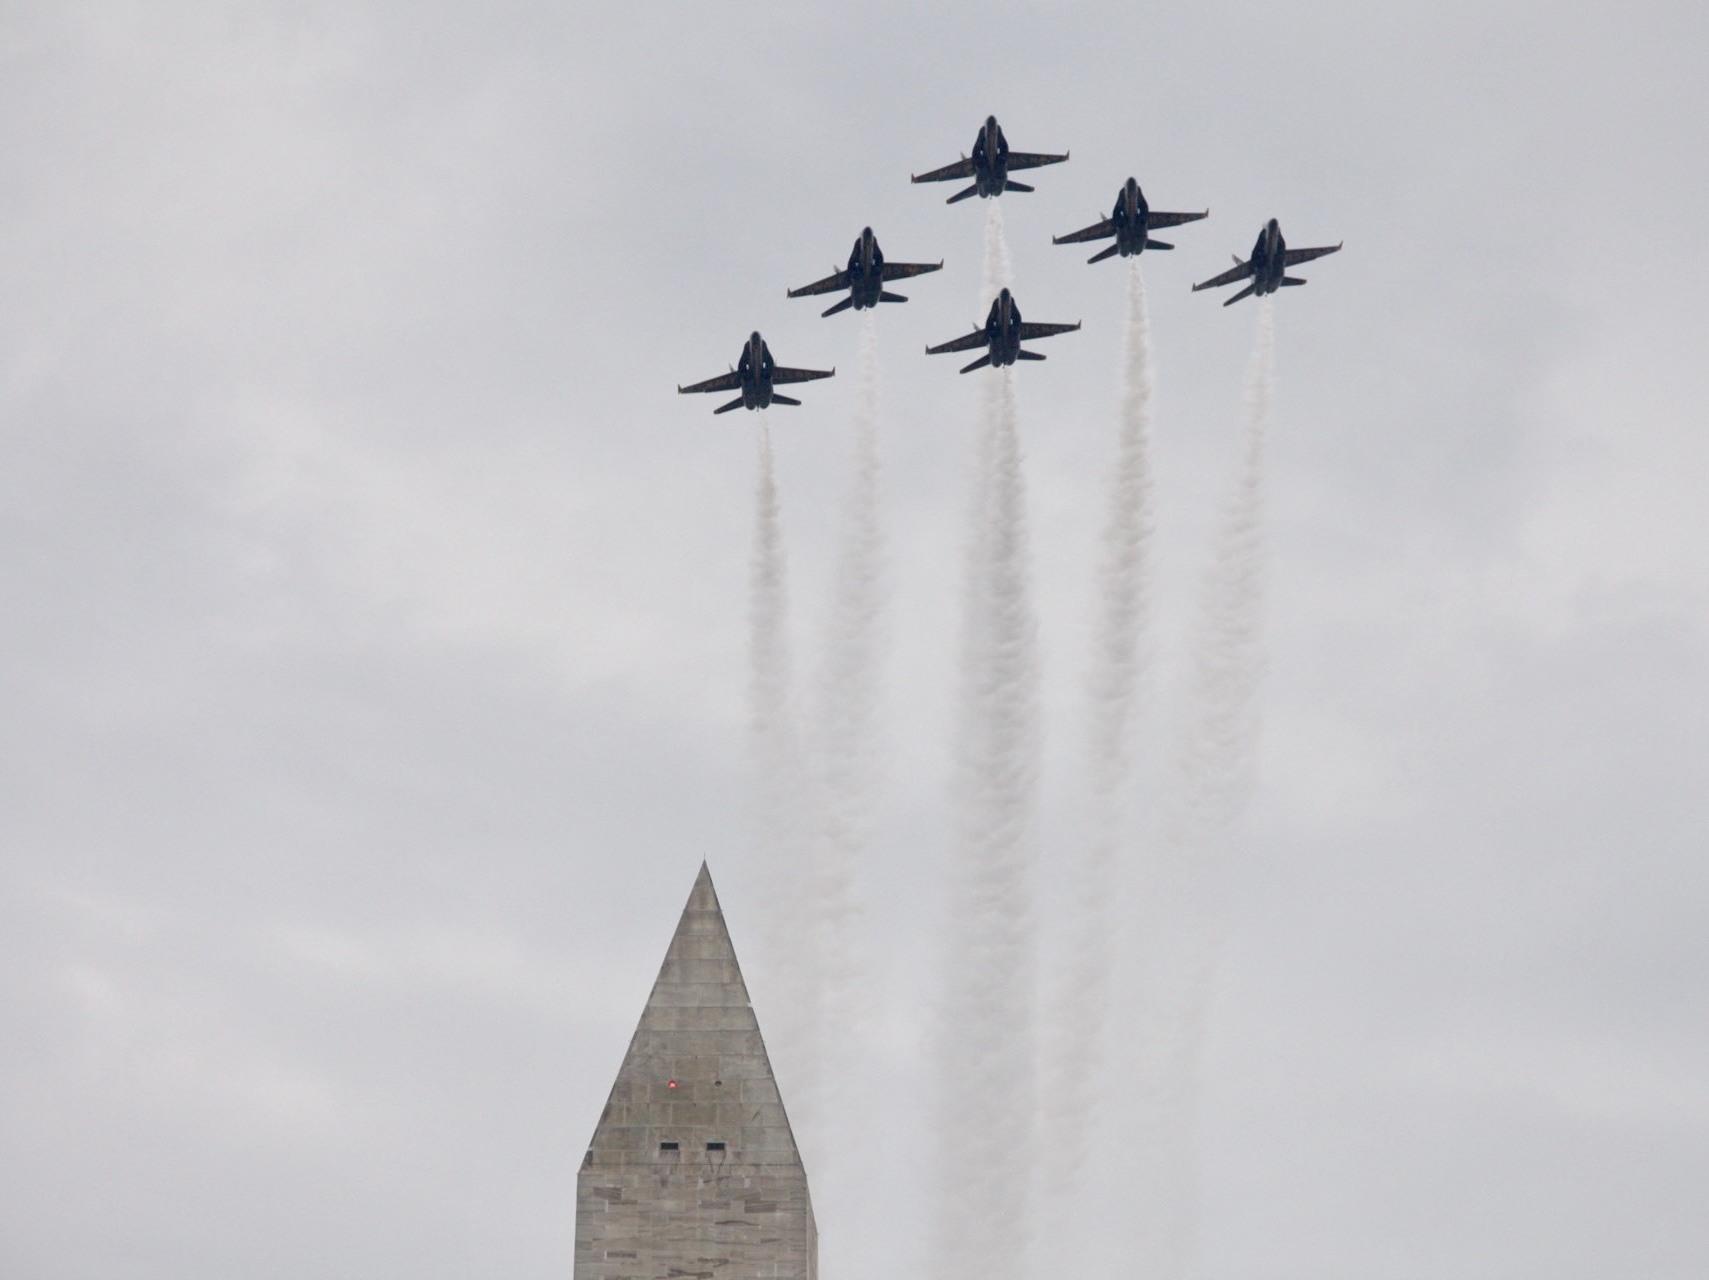 In 4th Of July Address, Trump Hails Military As Fighter Jets Fly